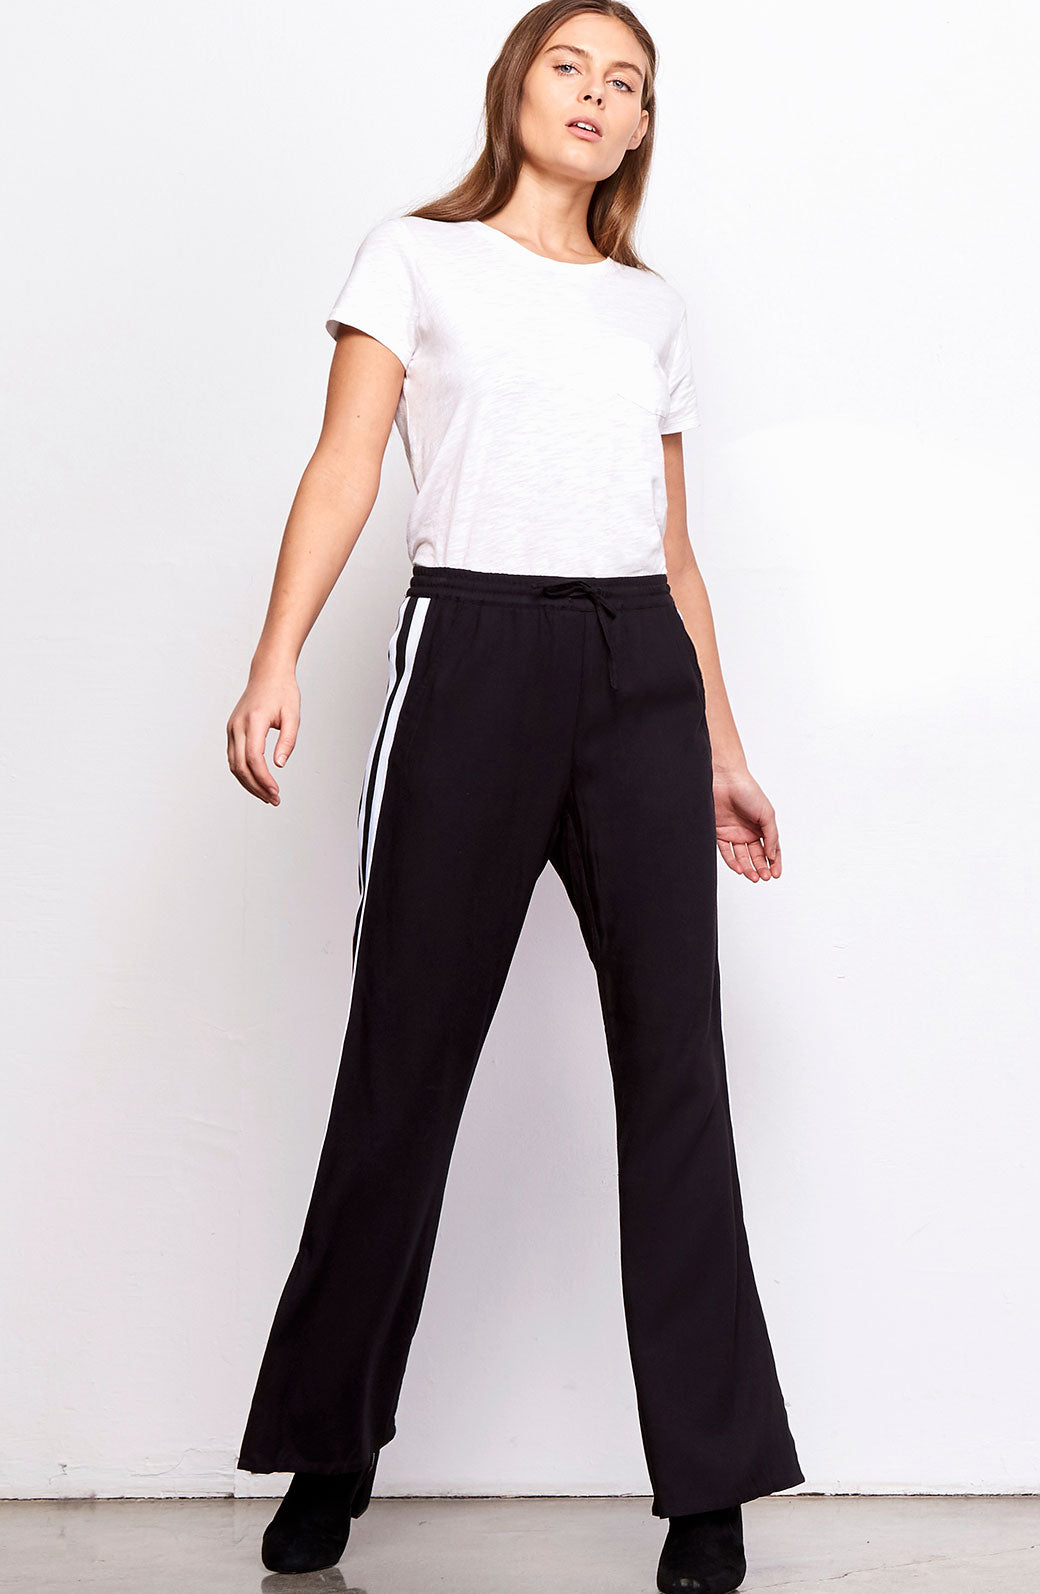 Baylee Track Pant In Black. Baylee Piste Pantalon En Noir. - Size S (also In L,xs) Bb Dakota - Taille S (également En L, Xs) Bb Dakota